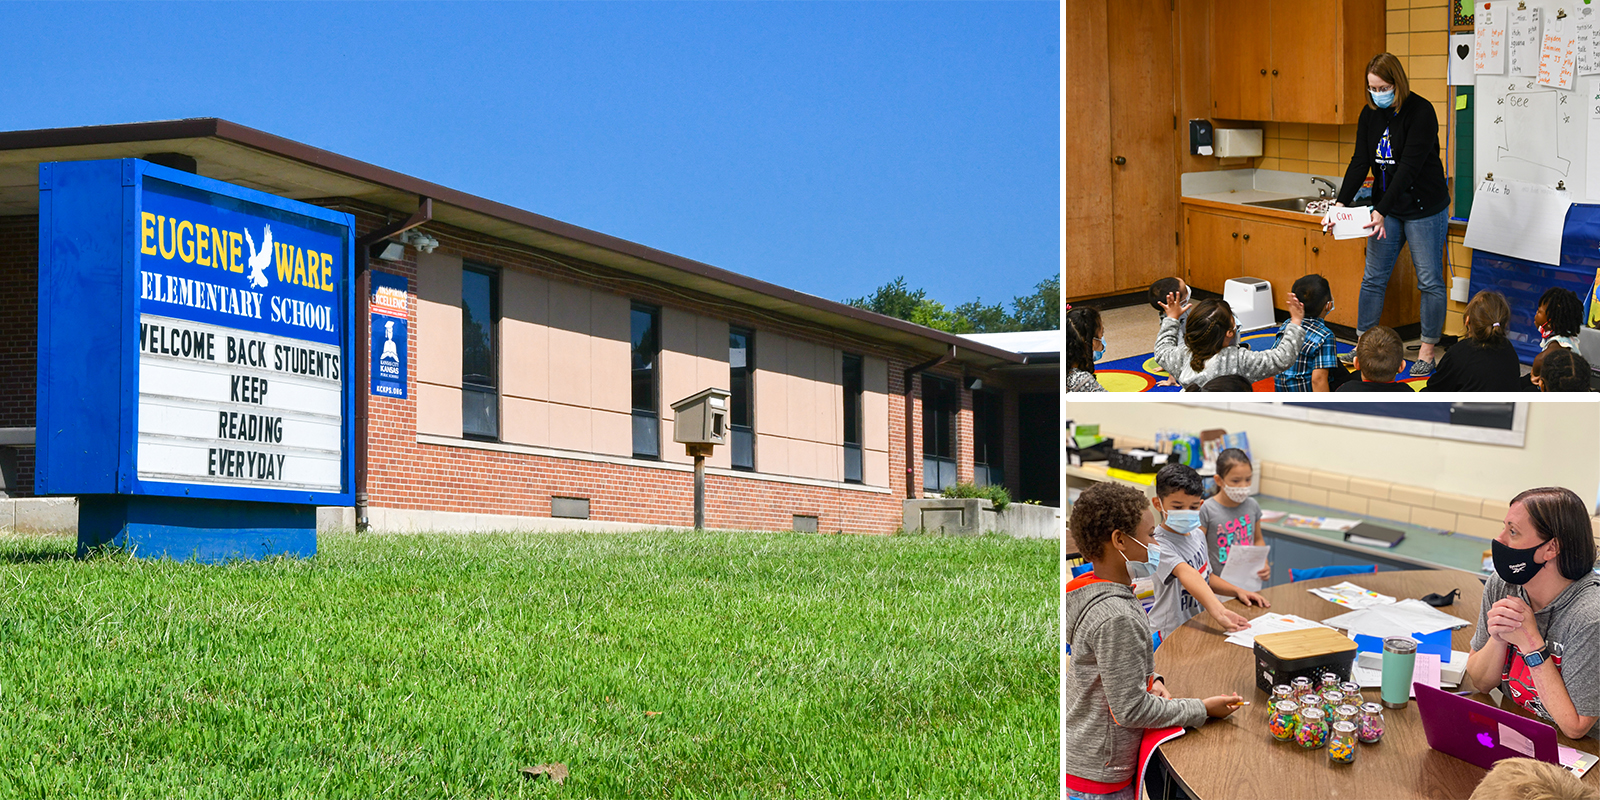 Collage of images of Eugene Ware Elementary School: Facade, students and teachers